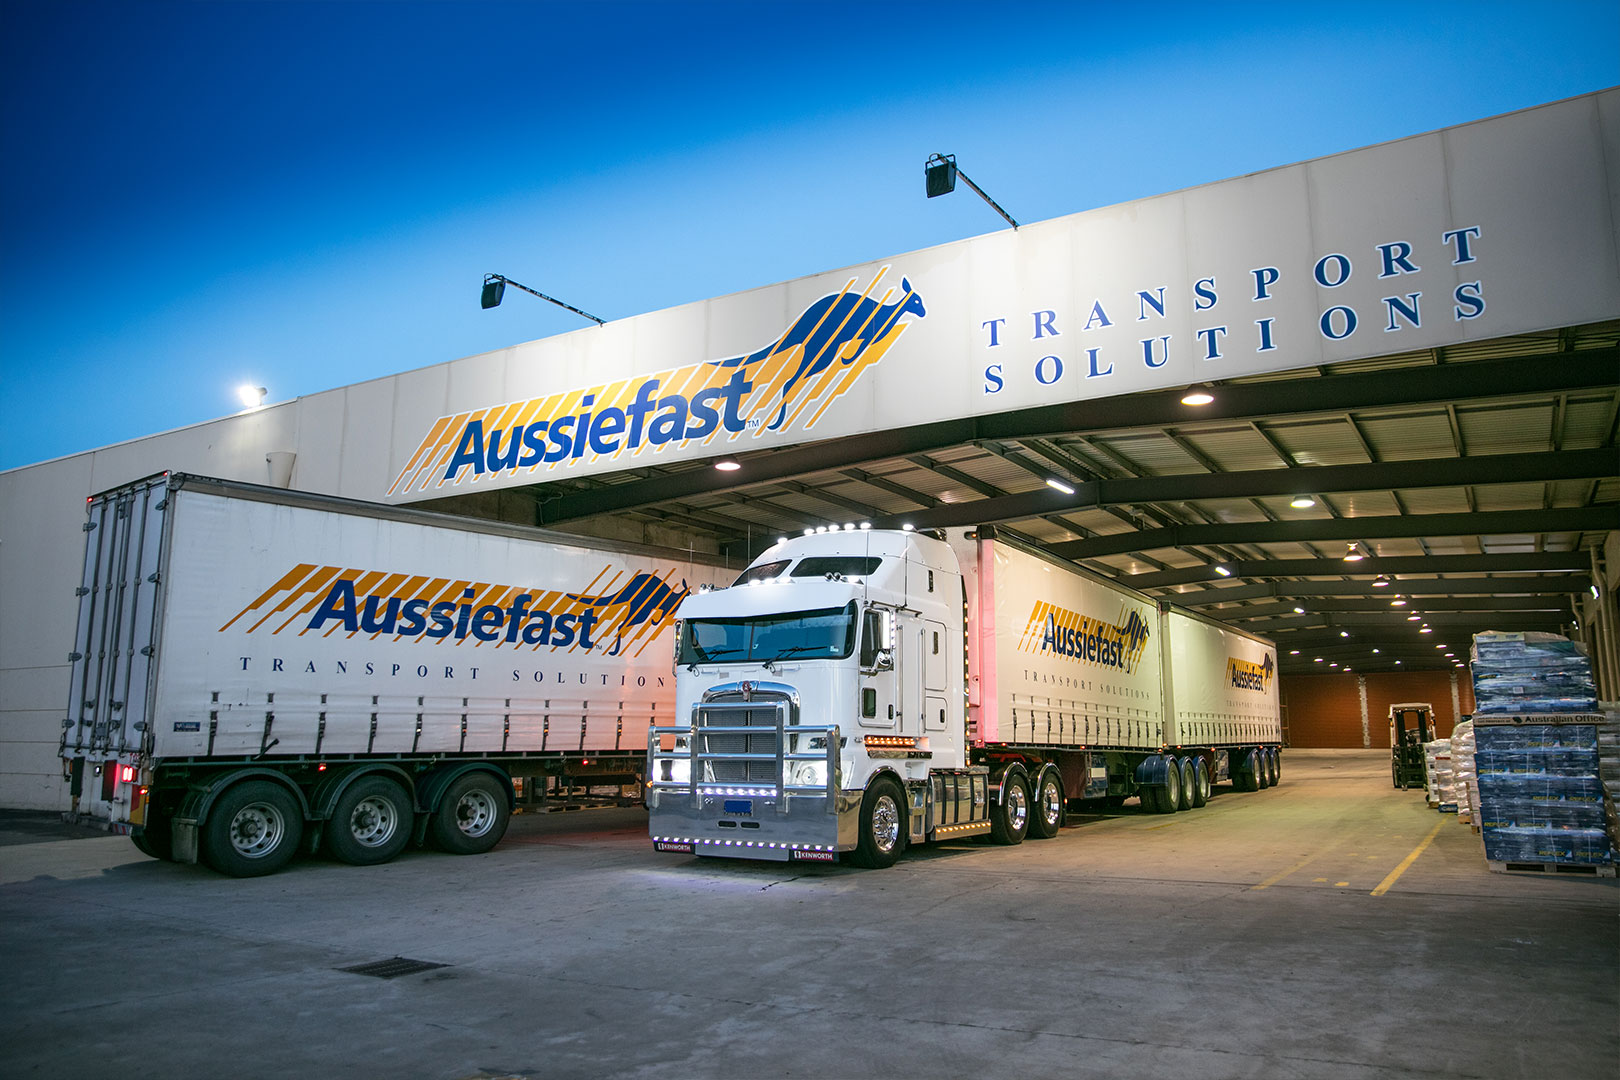 Aussiefast will get you there